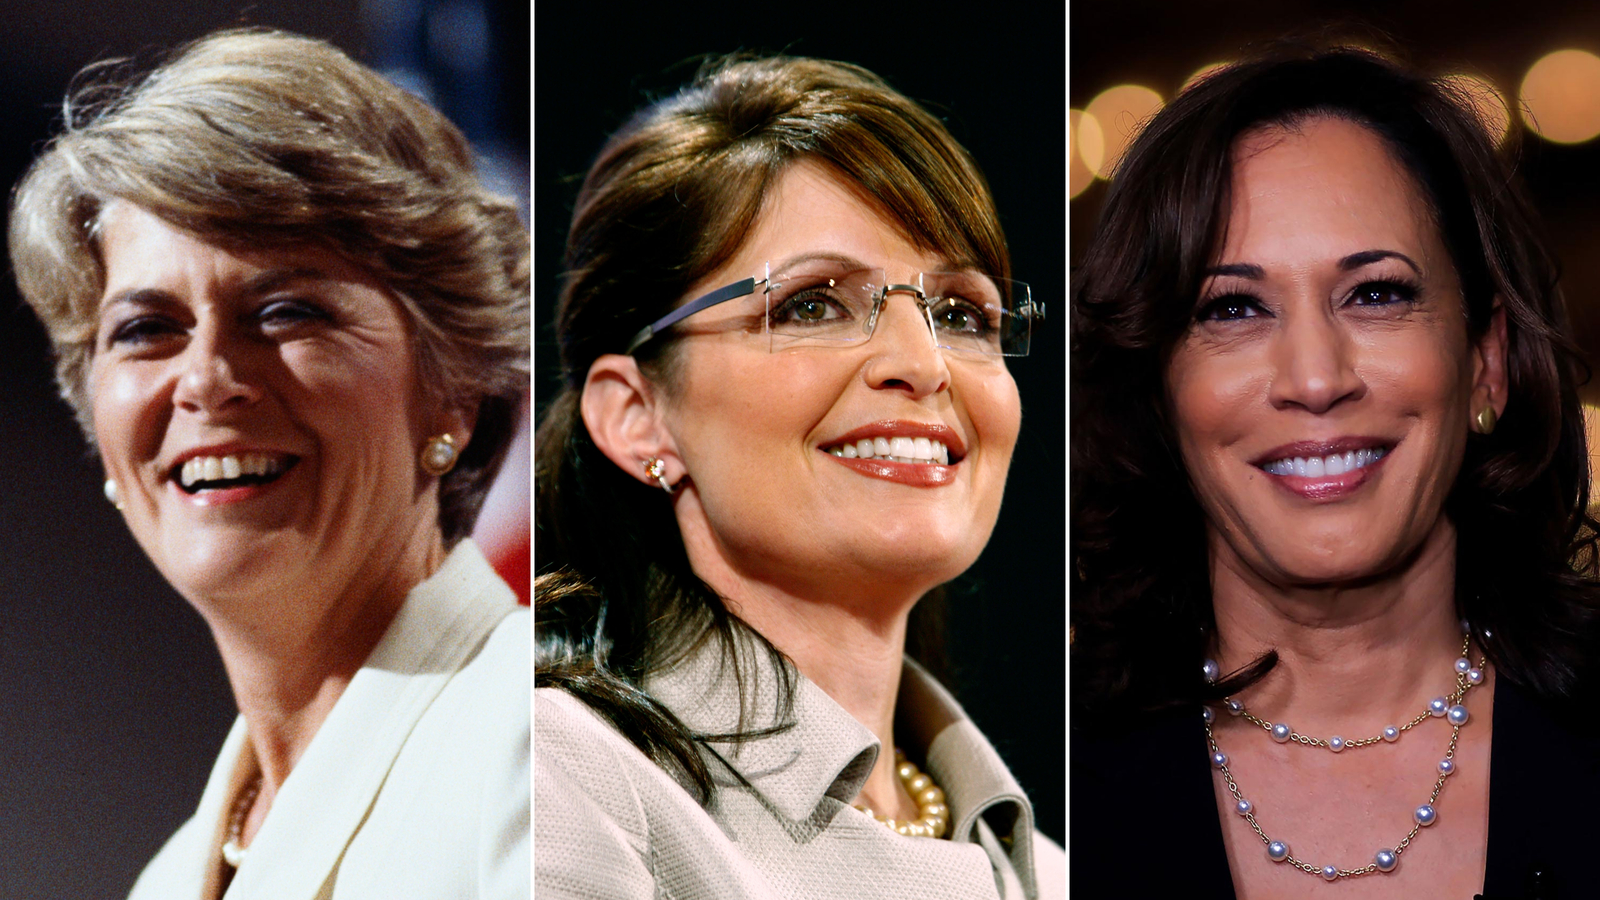 The history of the women nominated for vice president